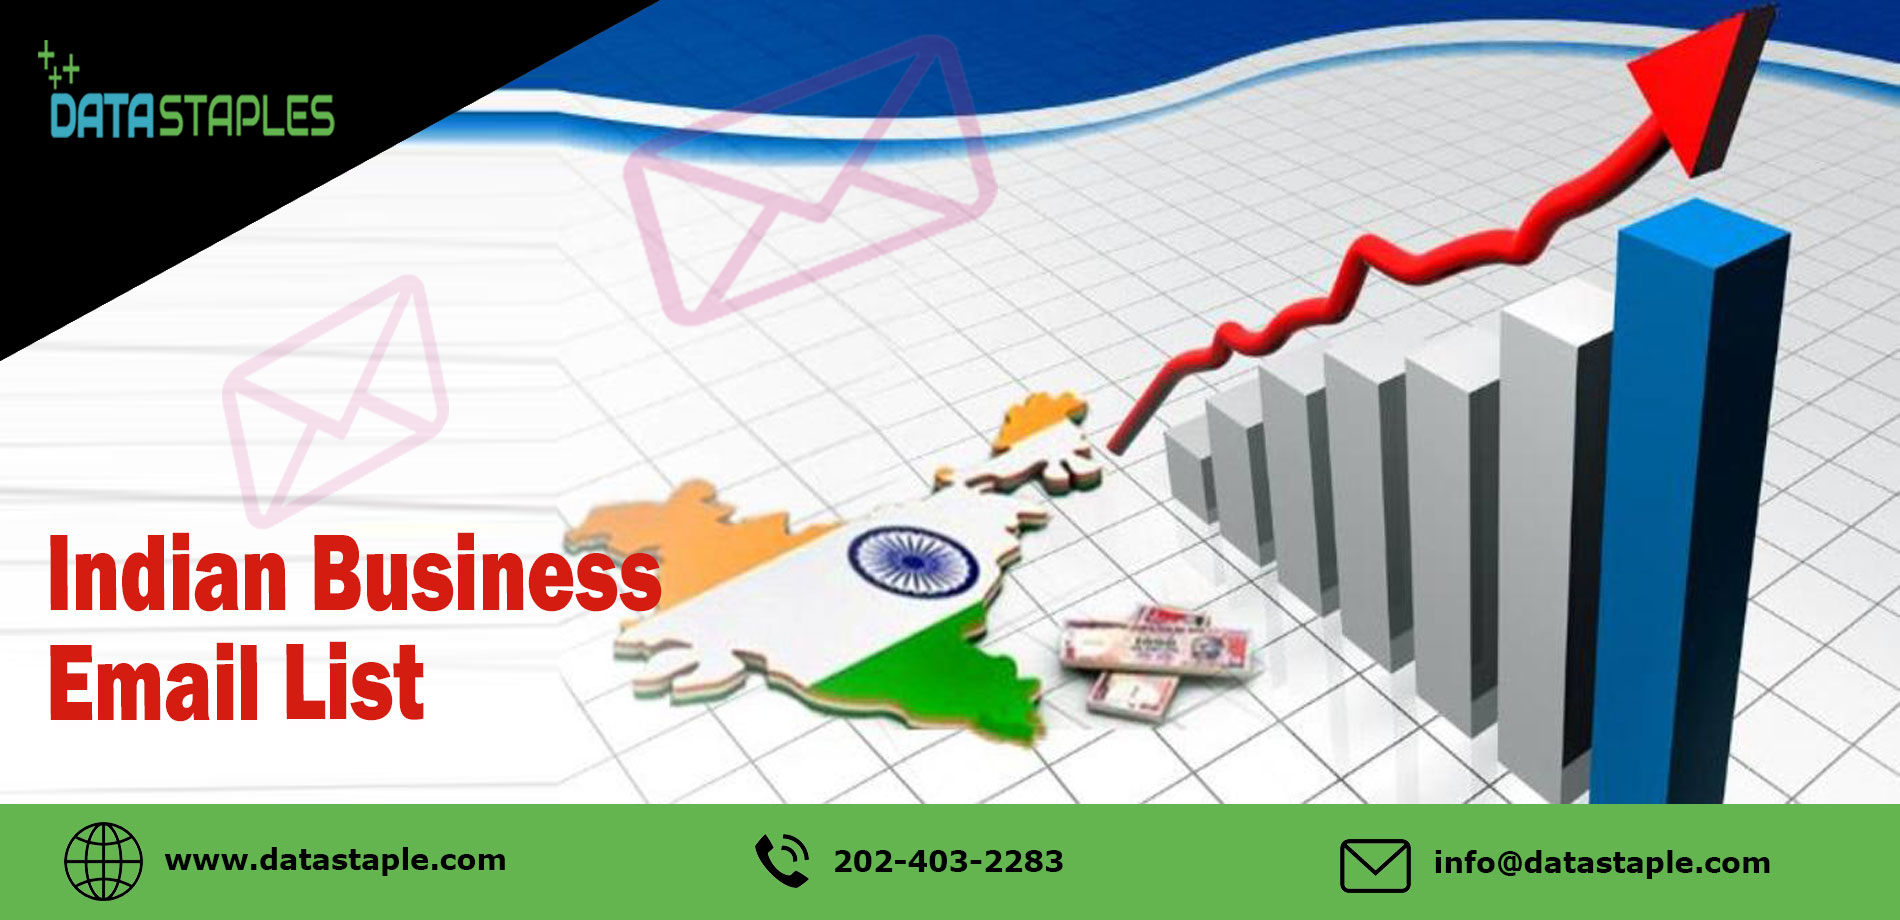 Indian Business Email List | DataStaples